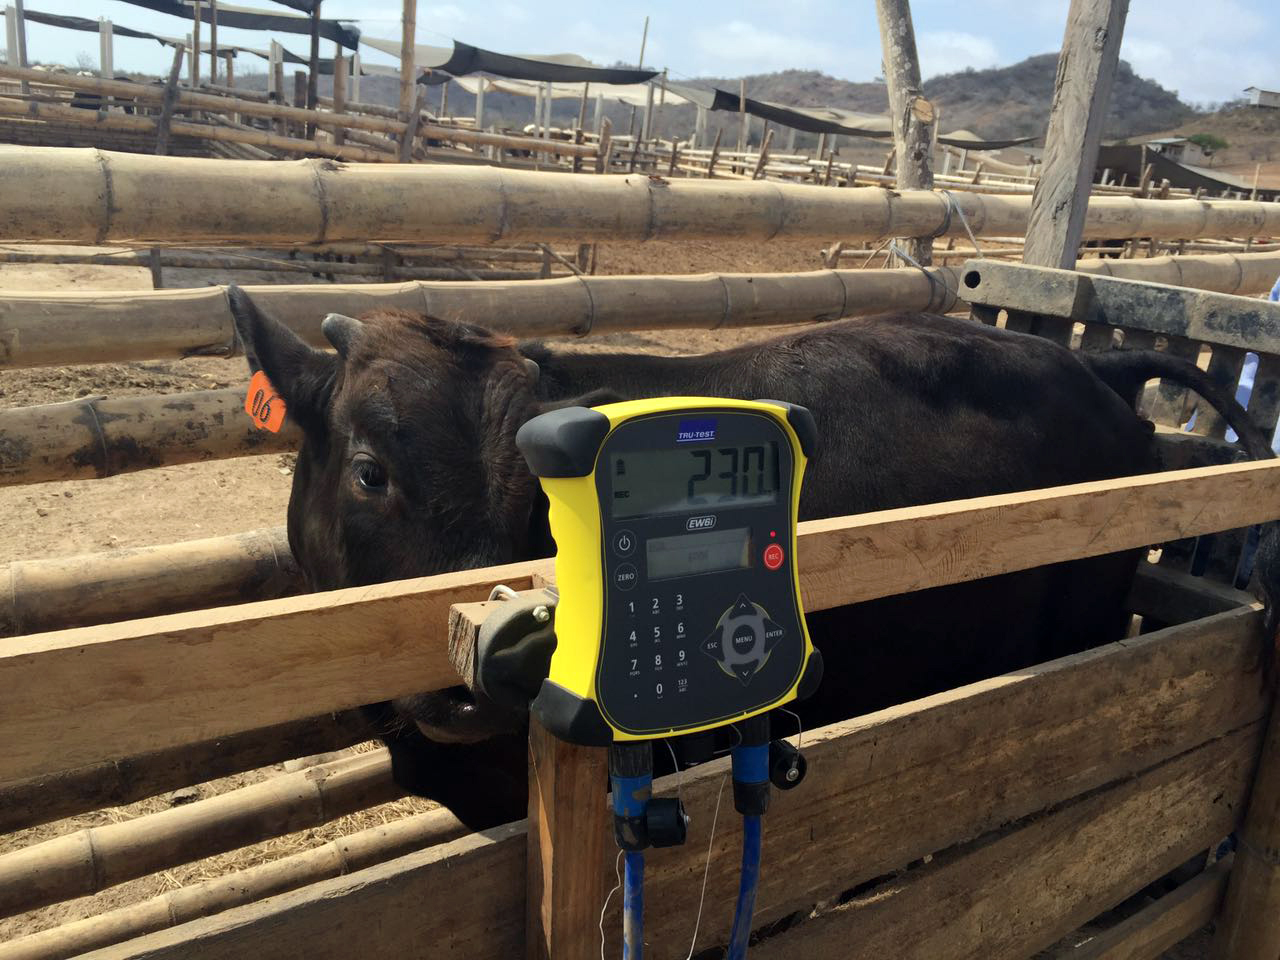 Weighing Wagyu calves.